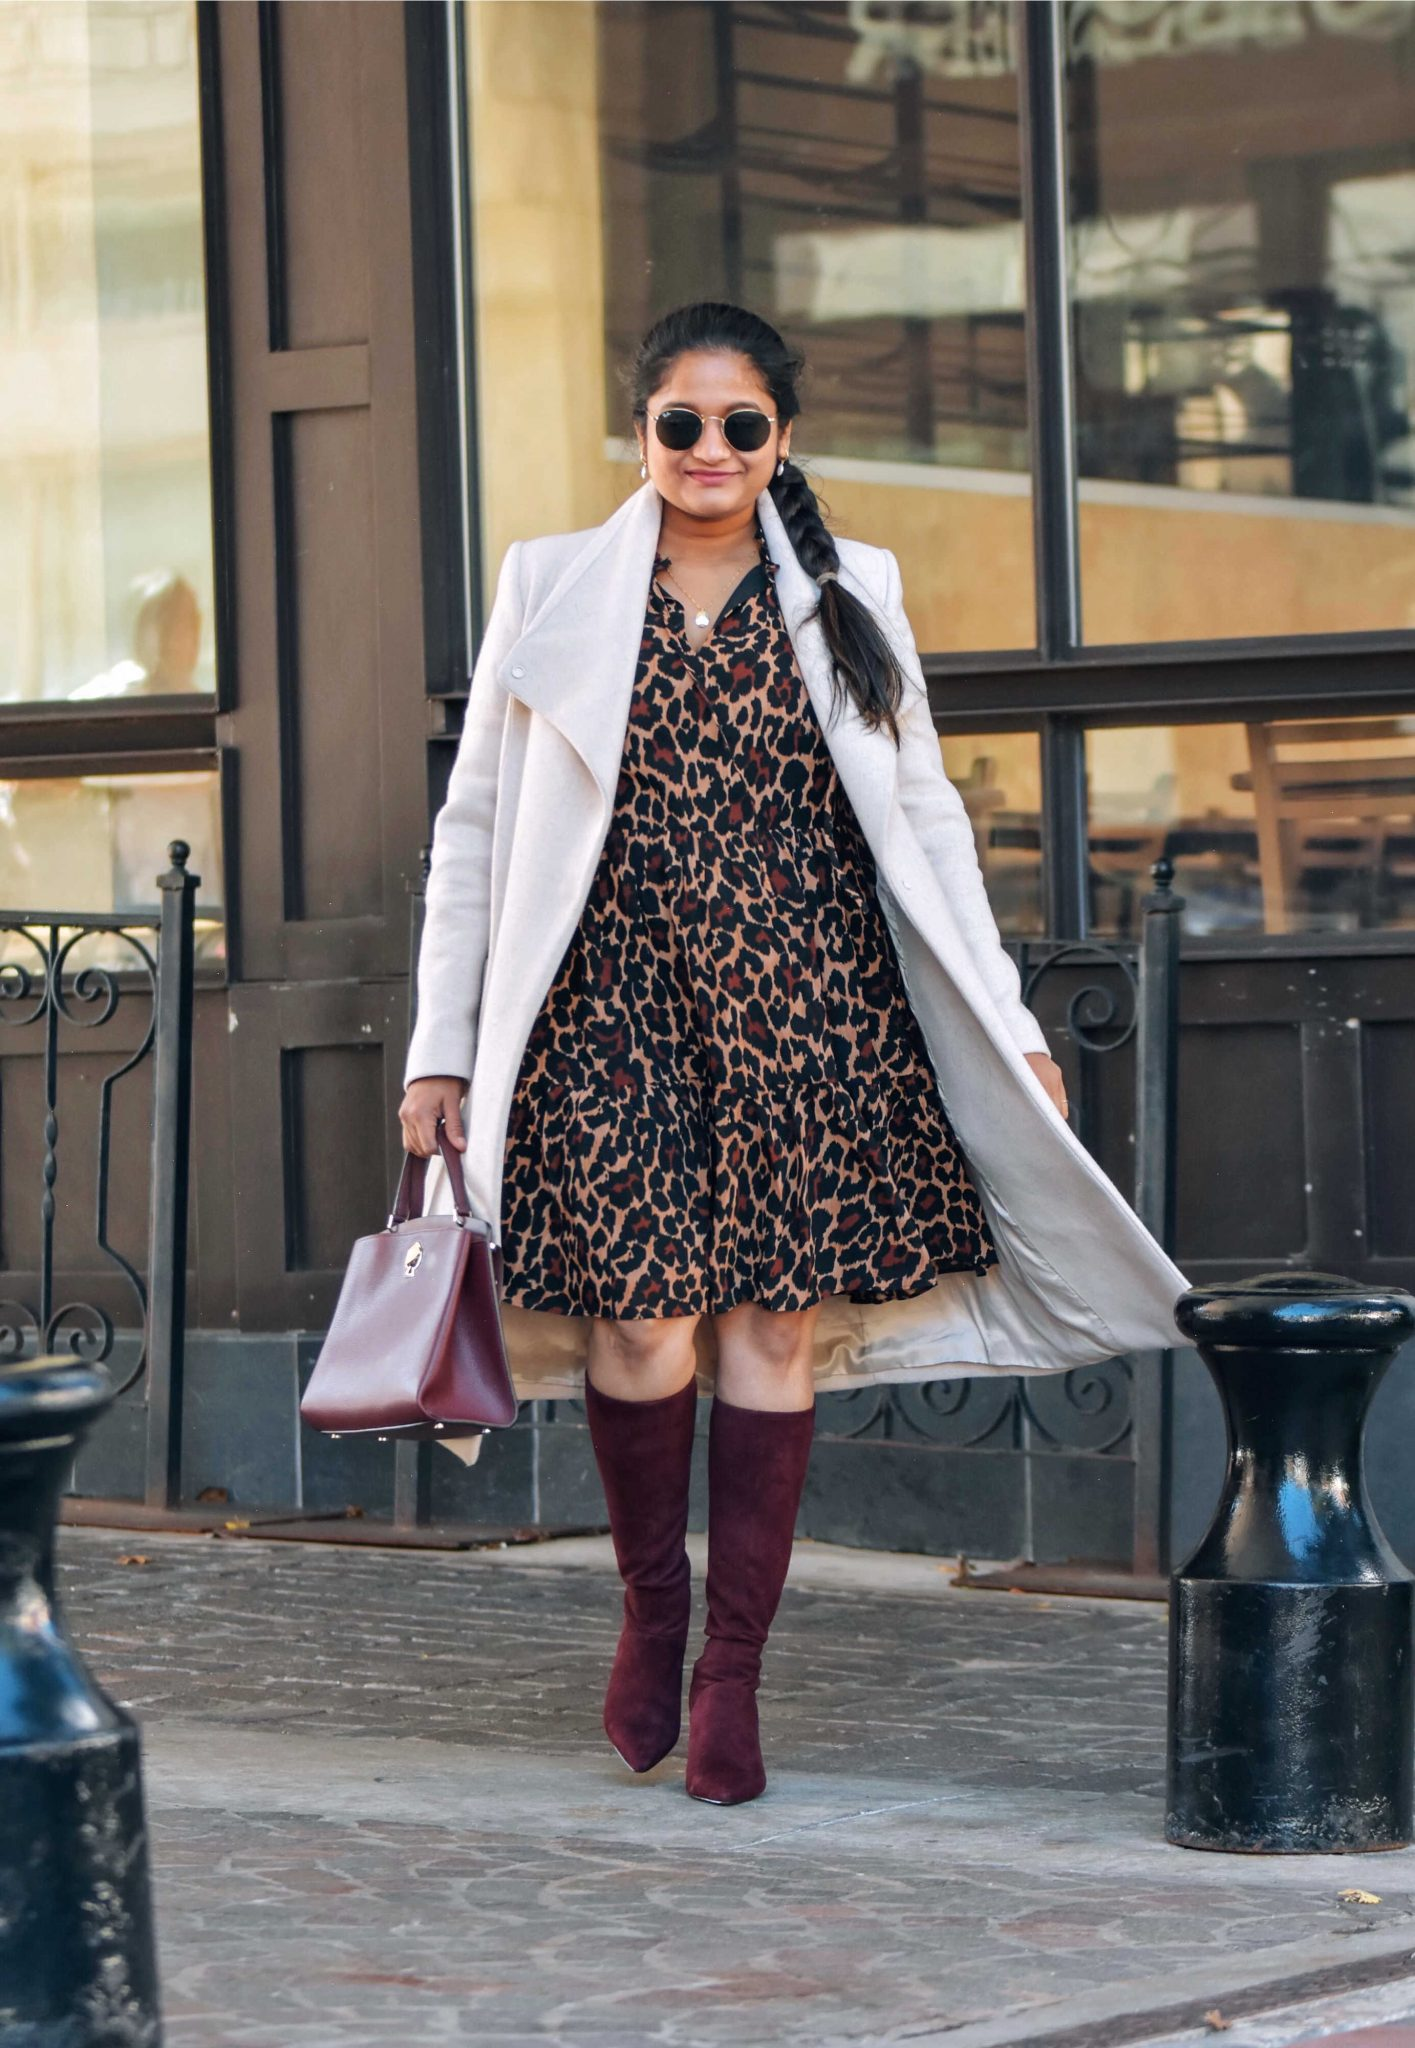 Wearing J.crew Tie-neck tiered dress in leopard crinkle chiffon, mango Belted wool coat, Boden Round Toe Stretch Burgundy boots-Holiday Outfit Ideas |Cute Holiday Outfit Ideas by popular Maryland modest fashion blog, Dreaming Loud: image of a woman wearing a J.crew Tie-neck tiered dress in leopard crinkle chiffon, mango Belted wool coat, and Boden Round Toe Stretch Burgundy boots.